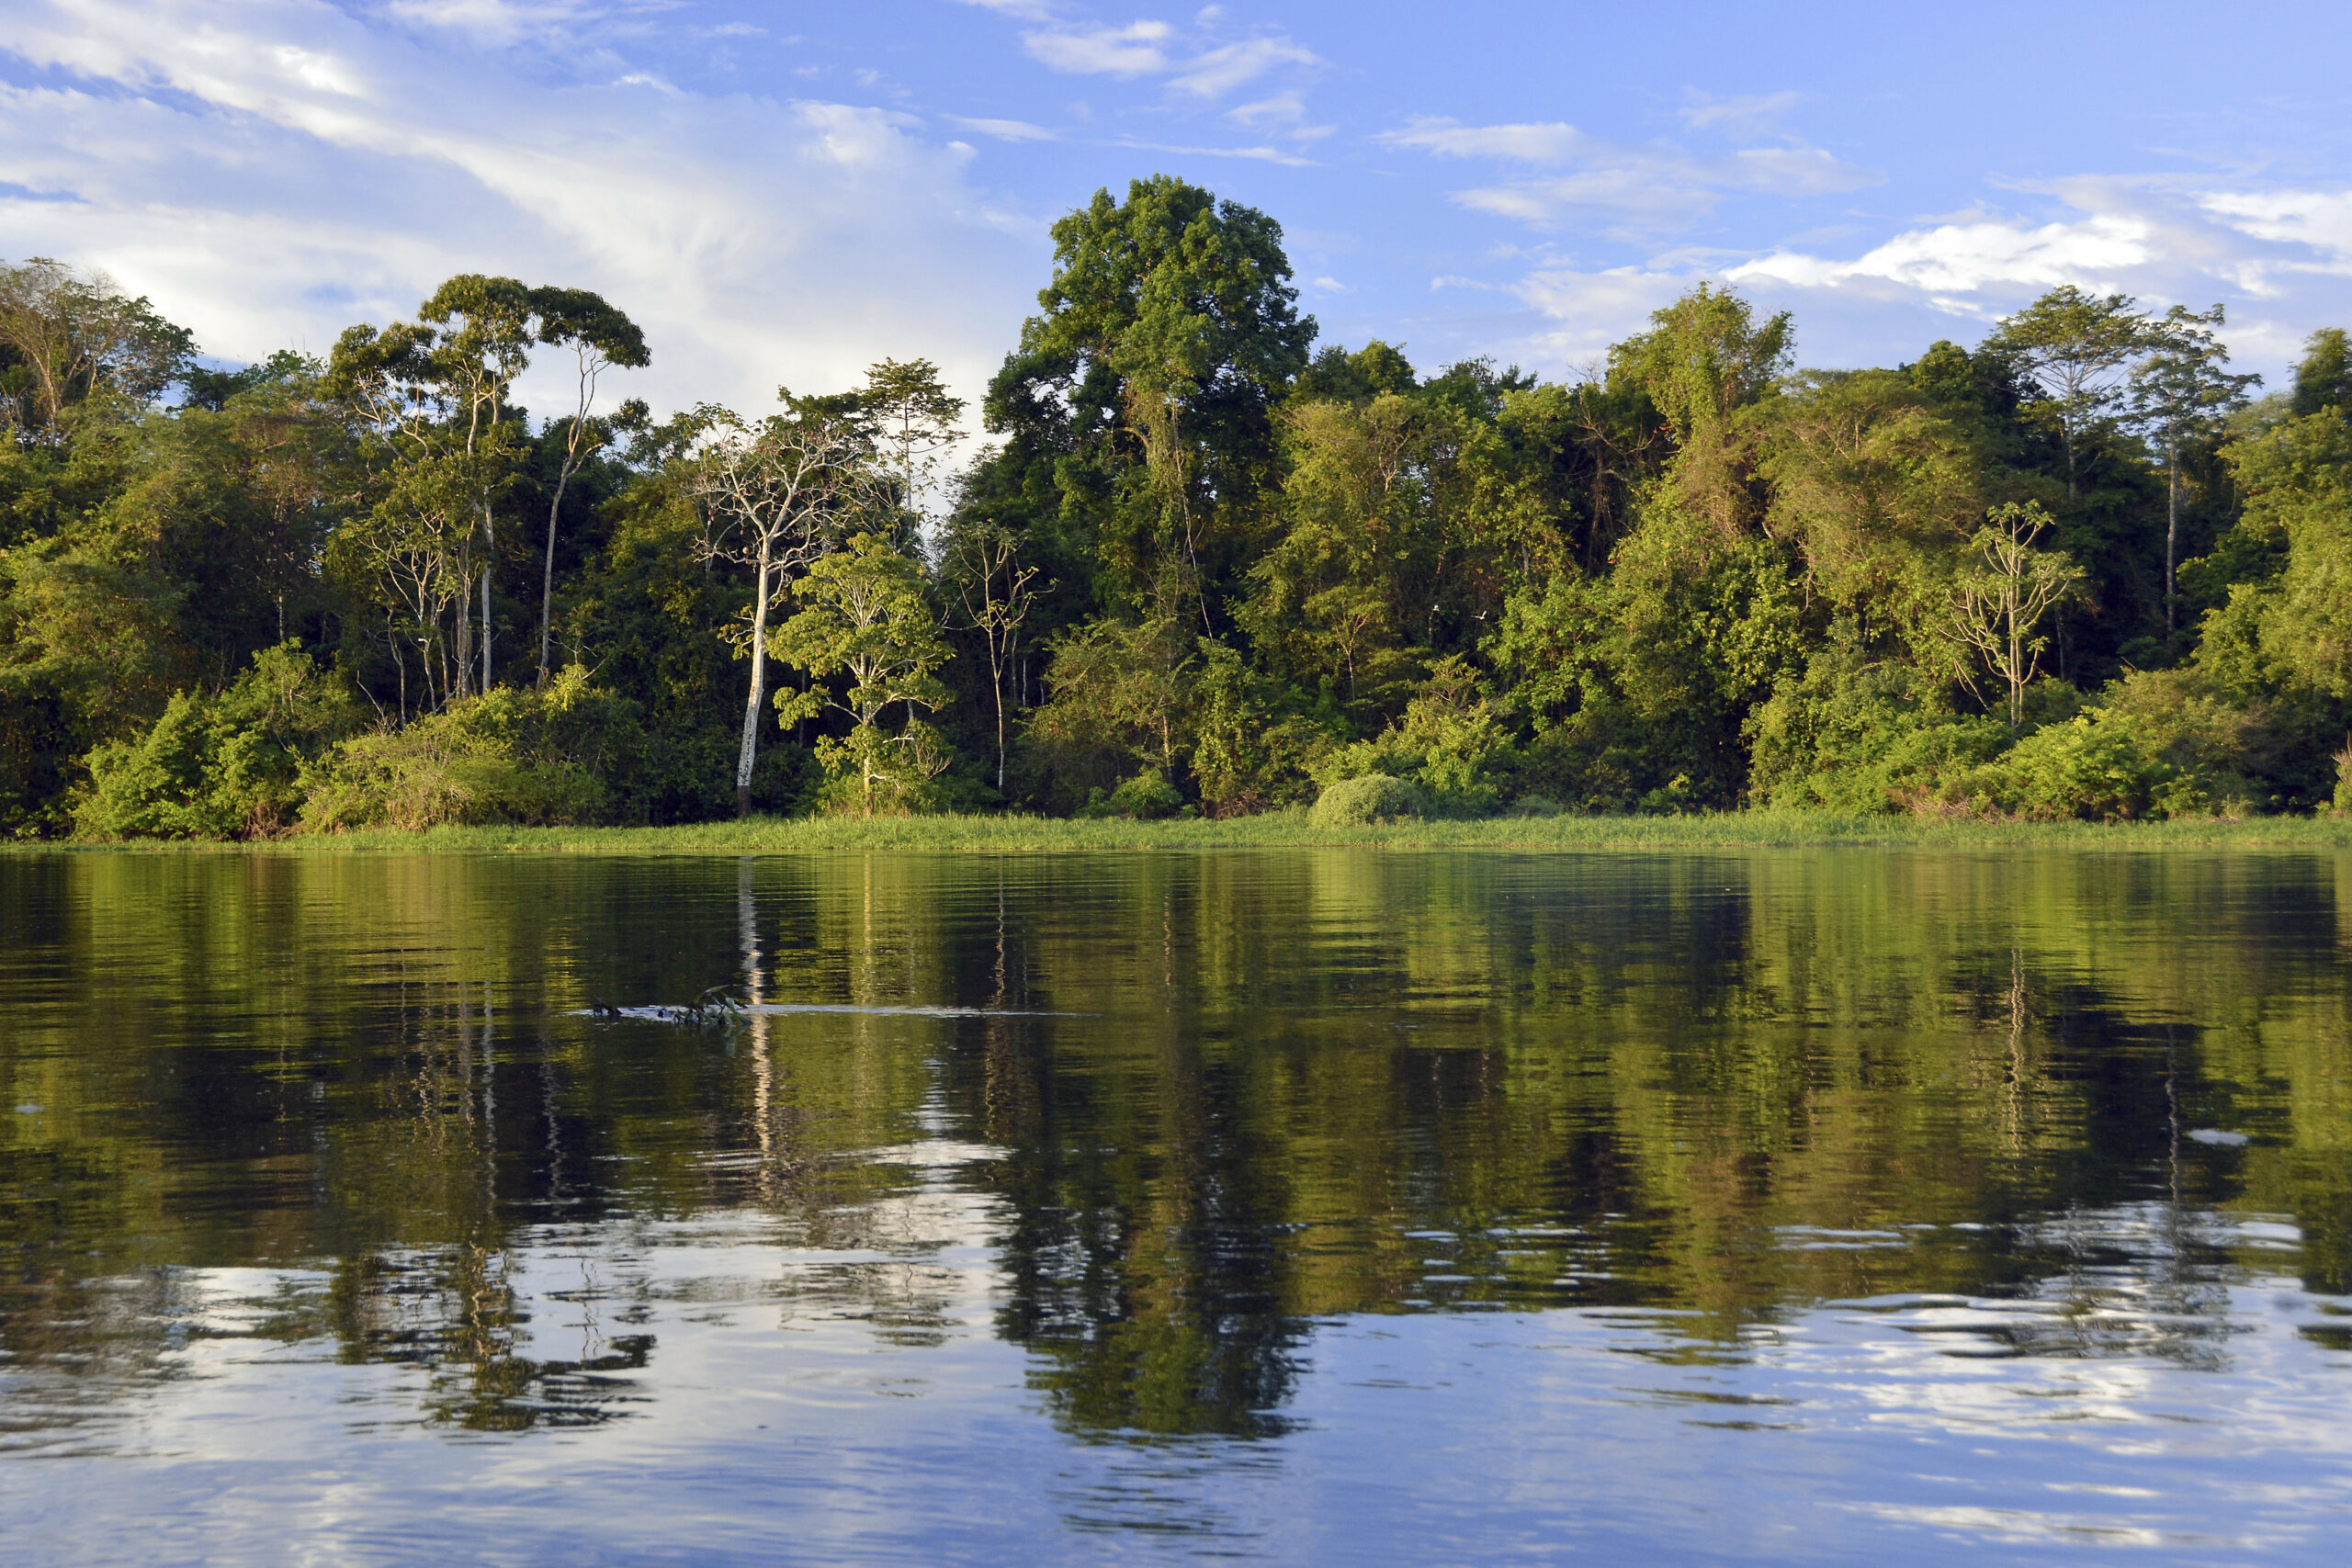 Bank of the Rio Solimoes river with flooded Varzea forest, Mamiraua National Park, Manaus, Amazonas, Brazil